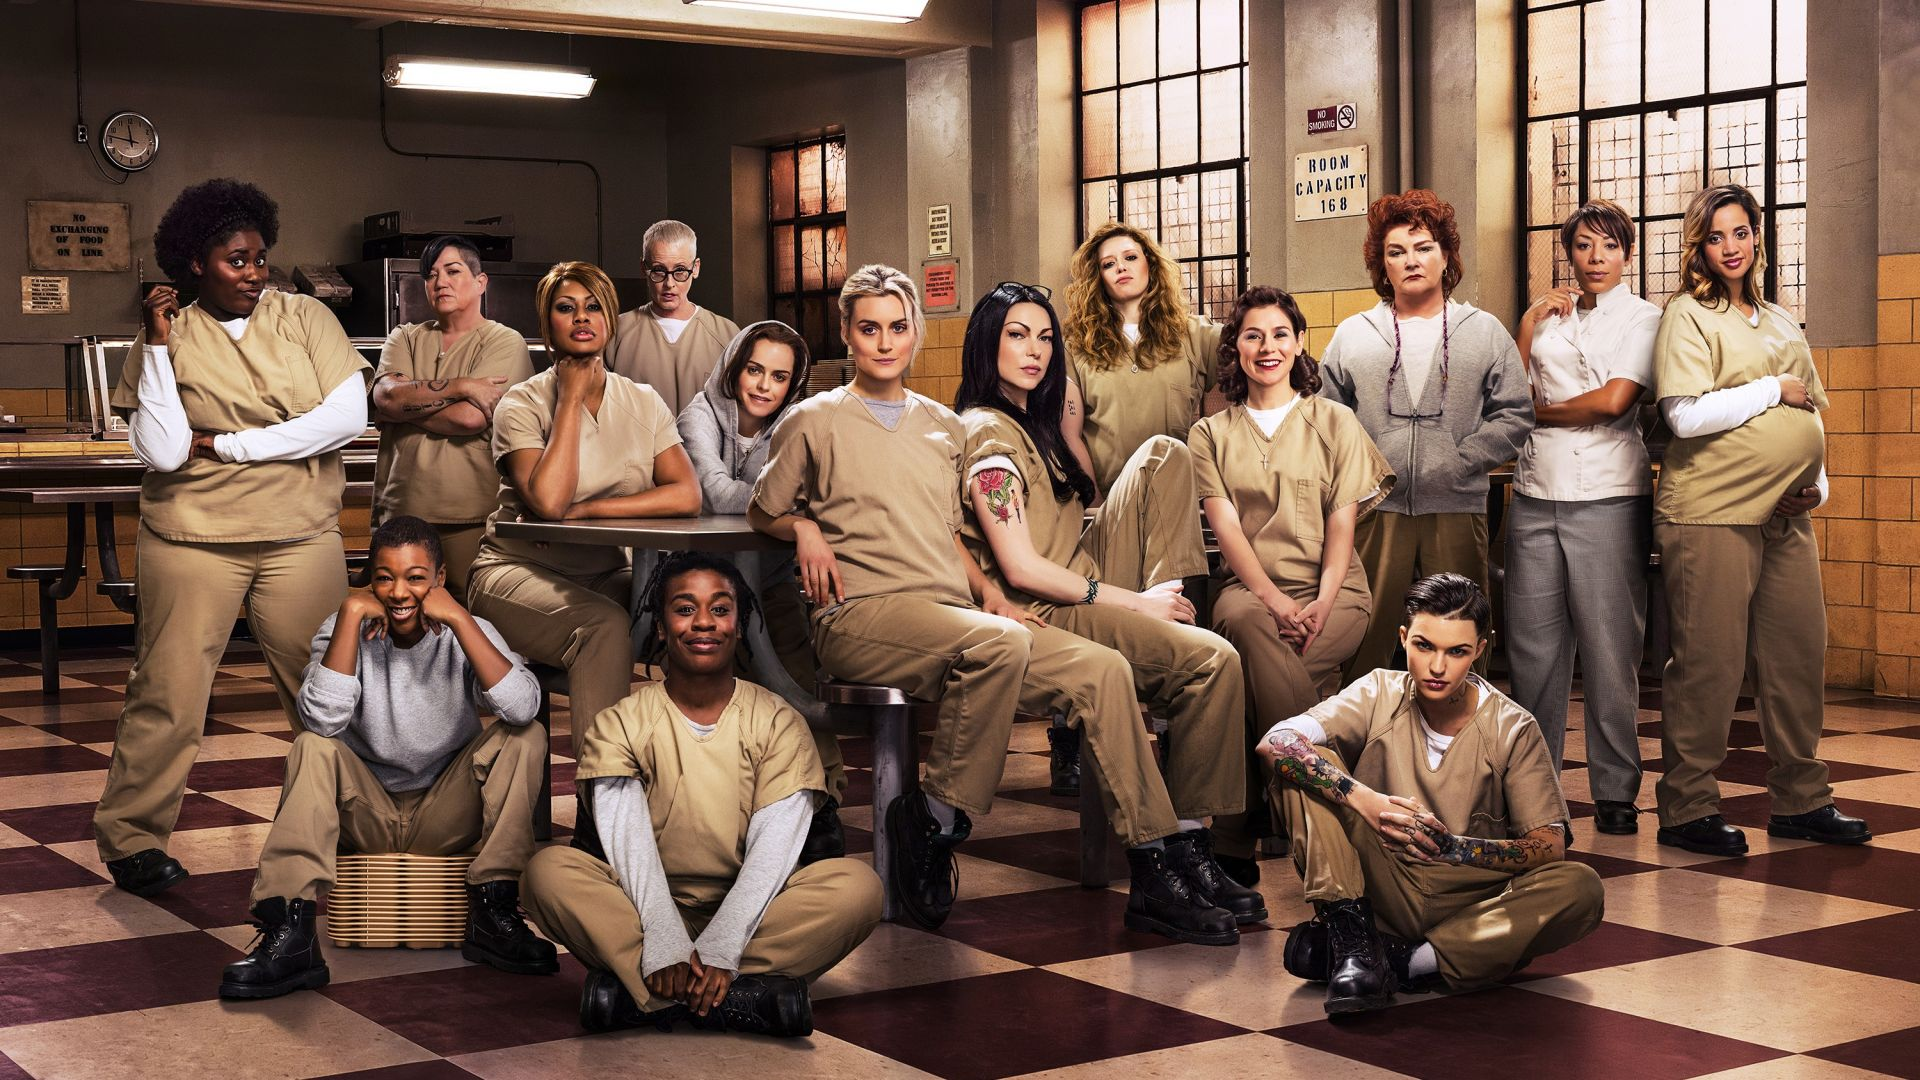 Orange is the new black, full cast, prison, Taylor Schilling, Laura Prepon, Best TV Series